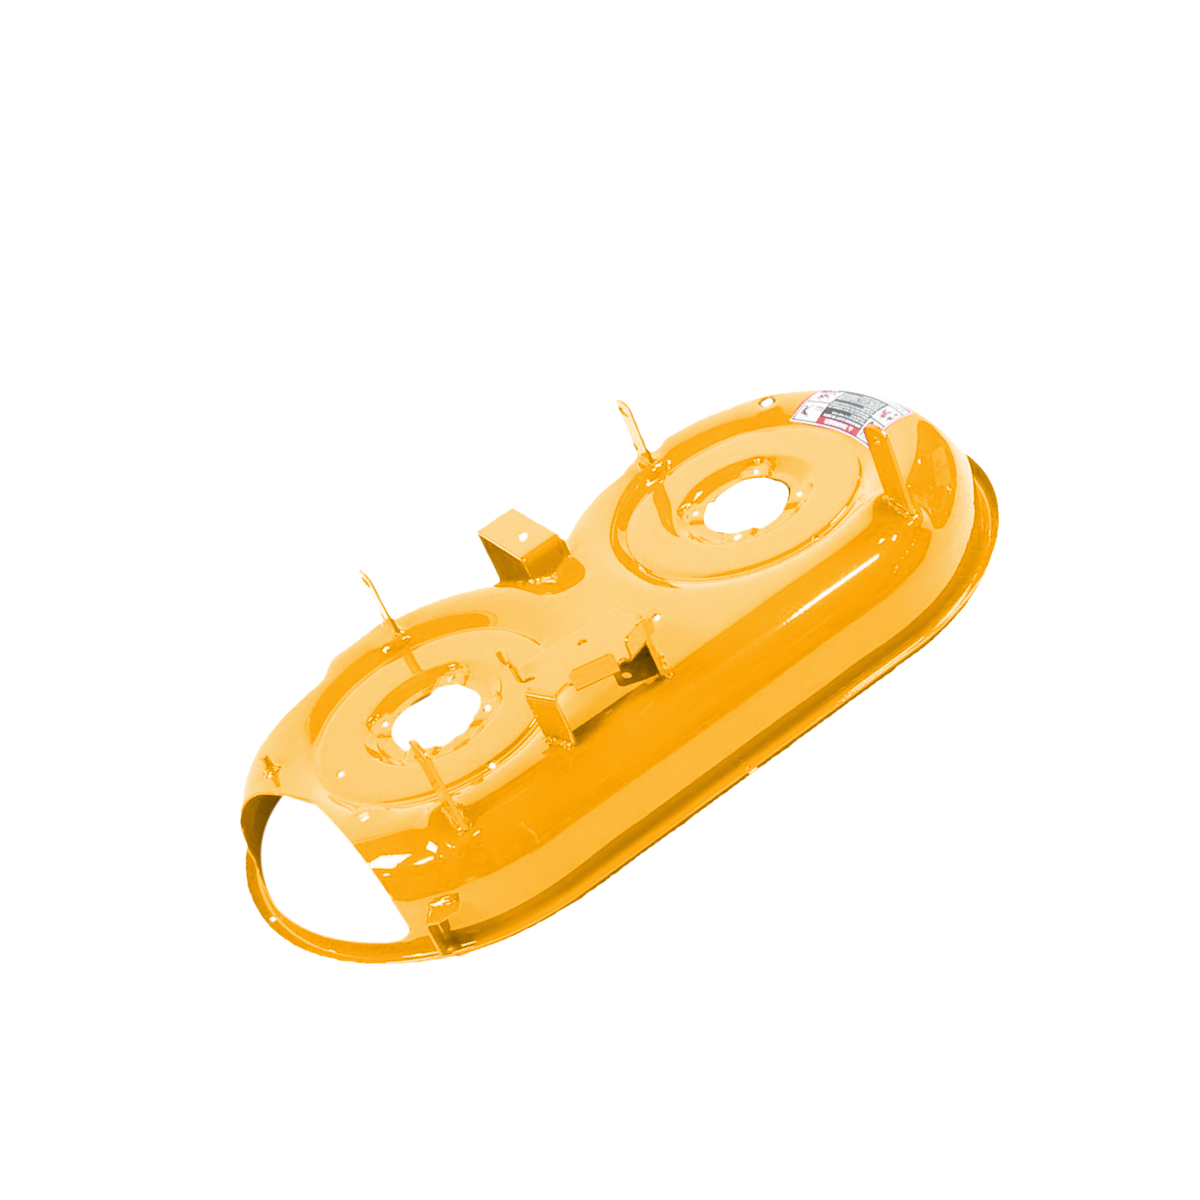 deck shell (33 inch) yellow-99 987-02254-0716